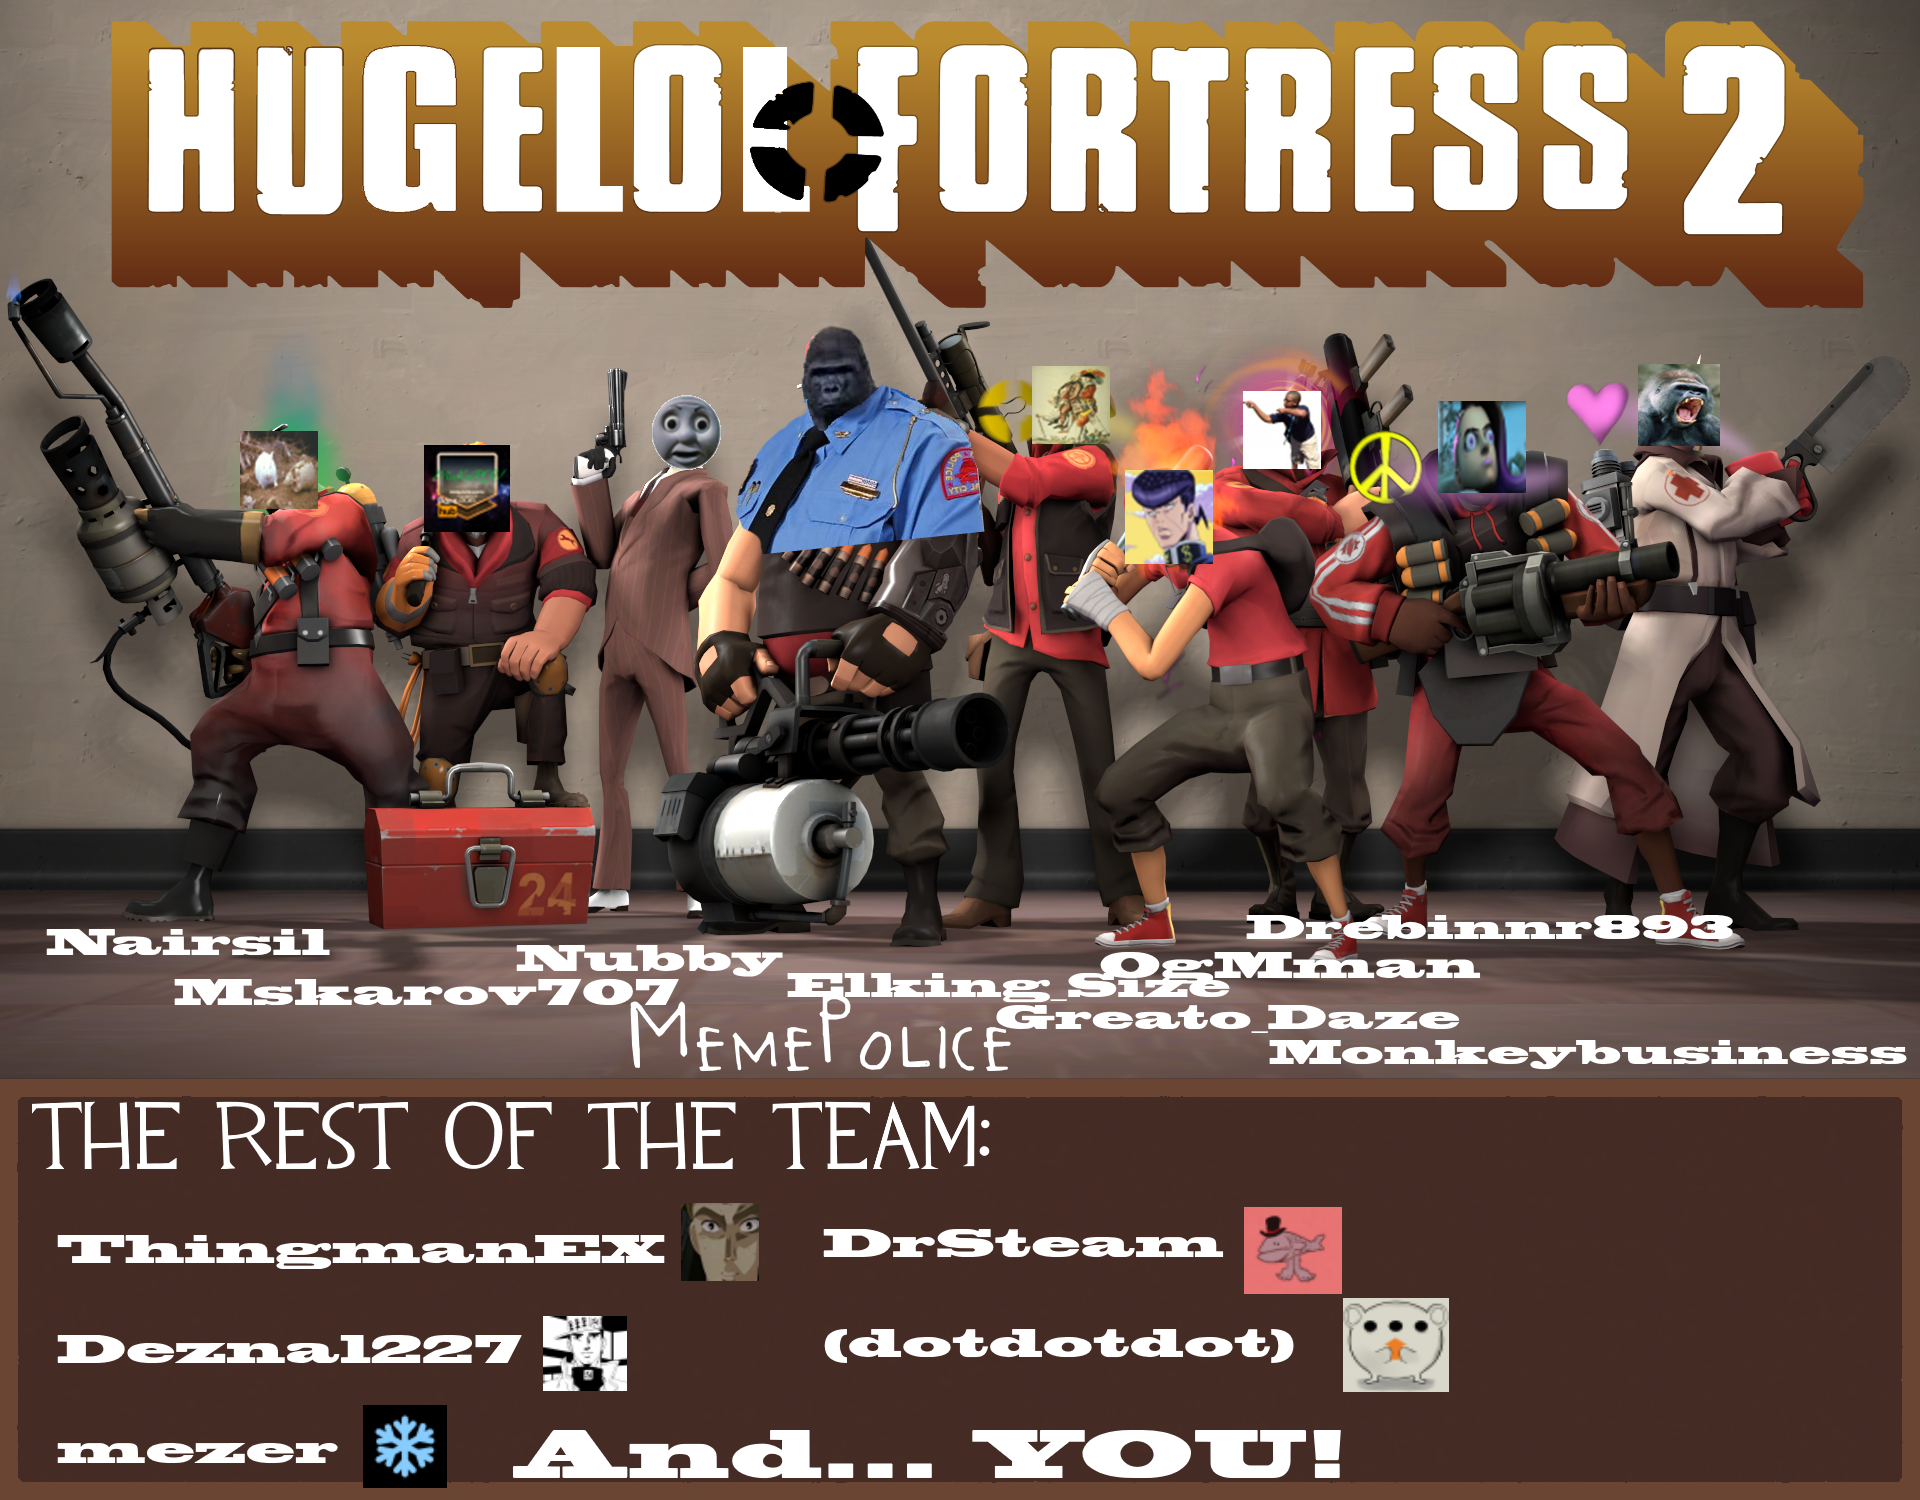 Come Join the Hugelol TF2 Team, reply in DM or comment if you're interested in joining us